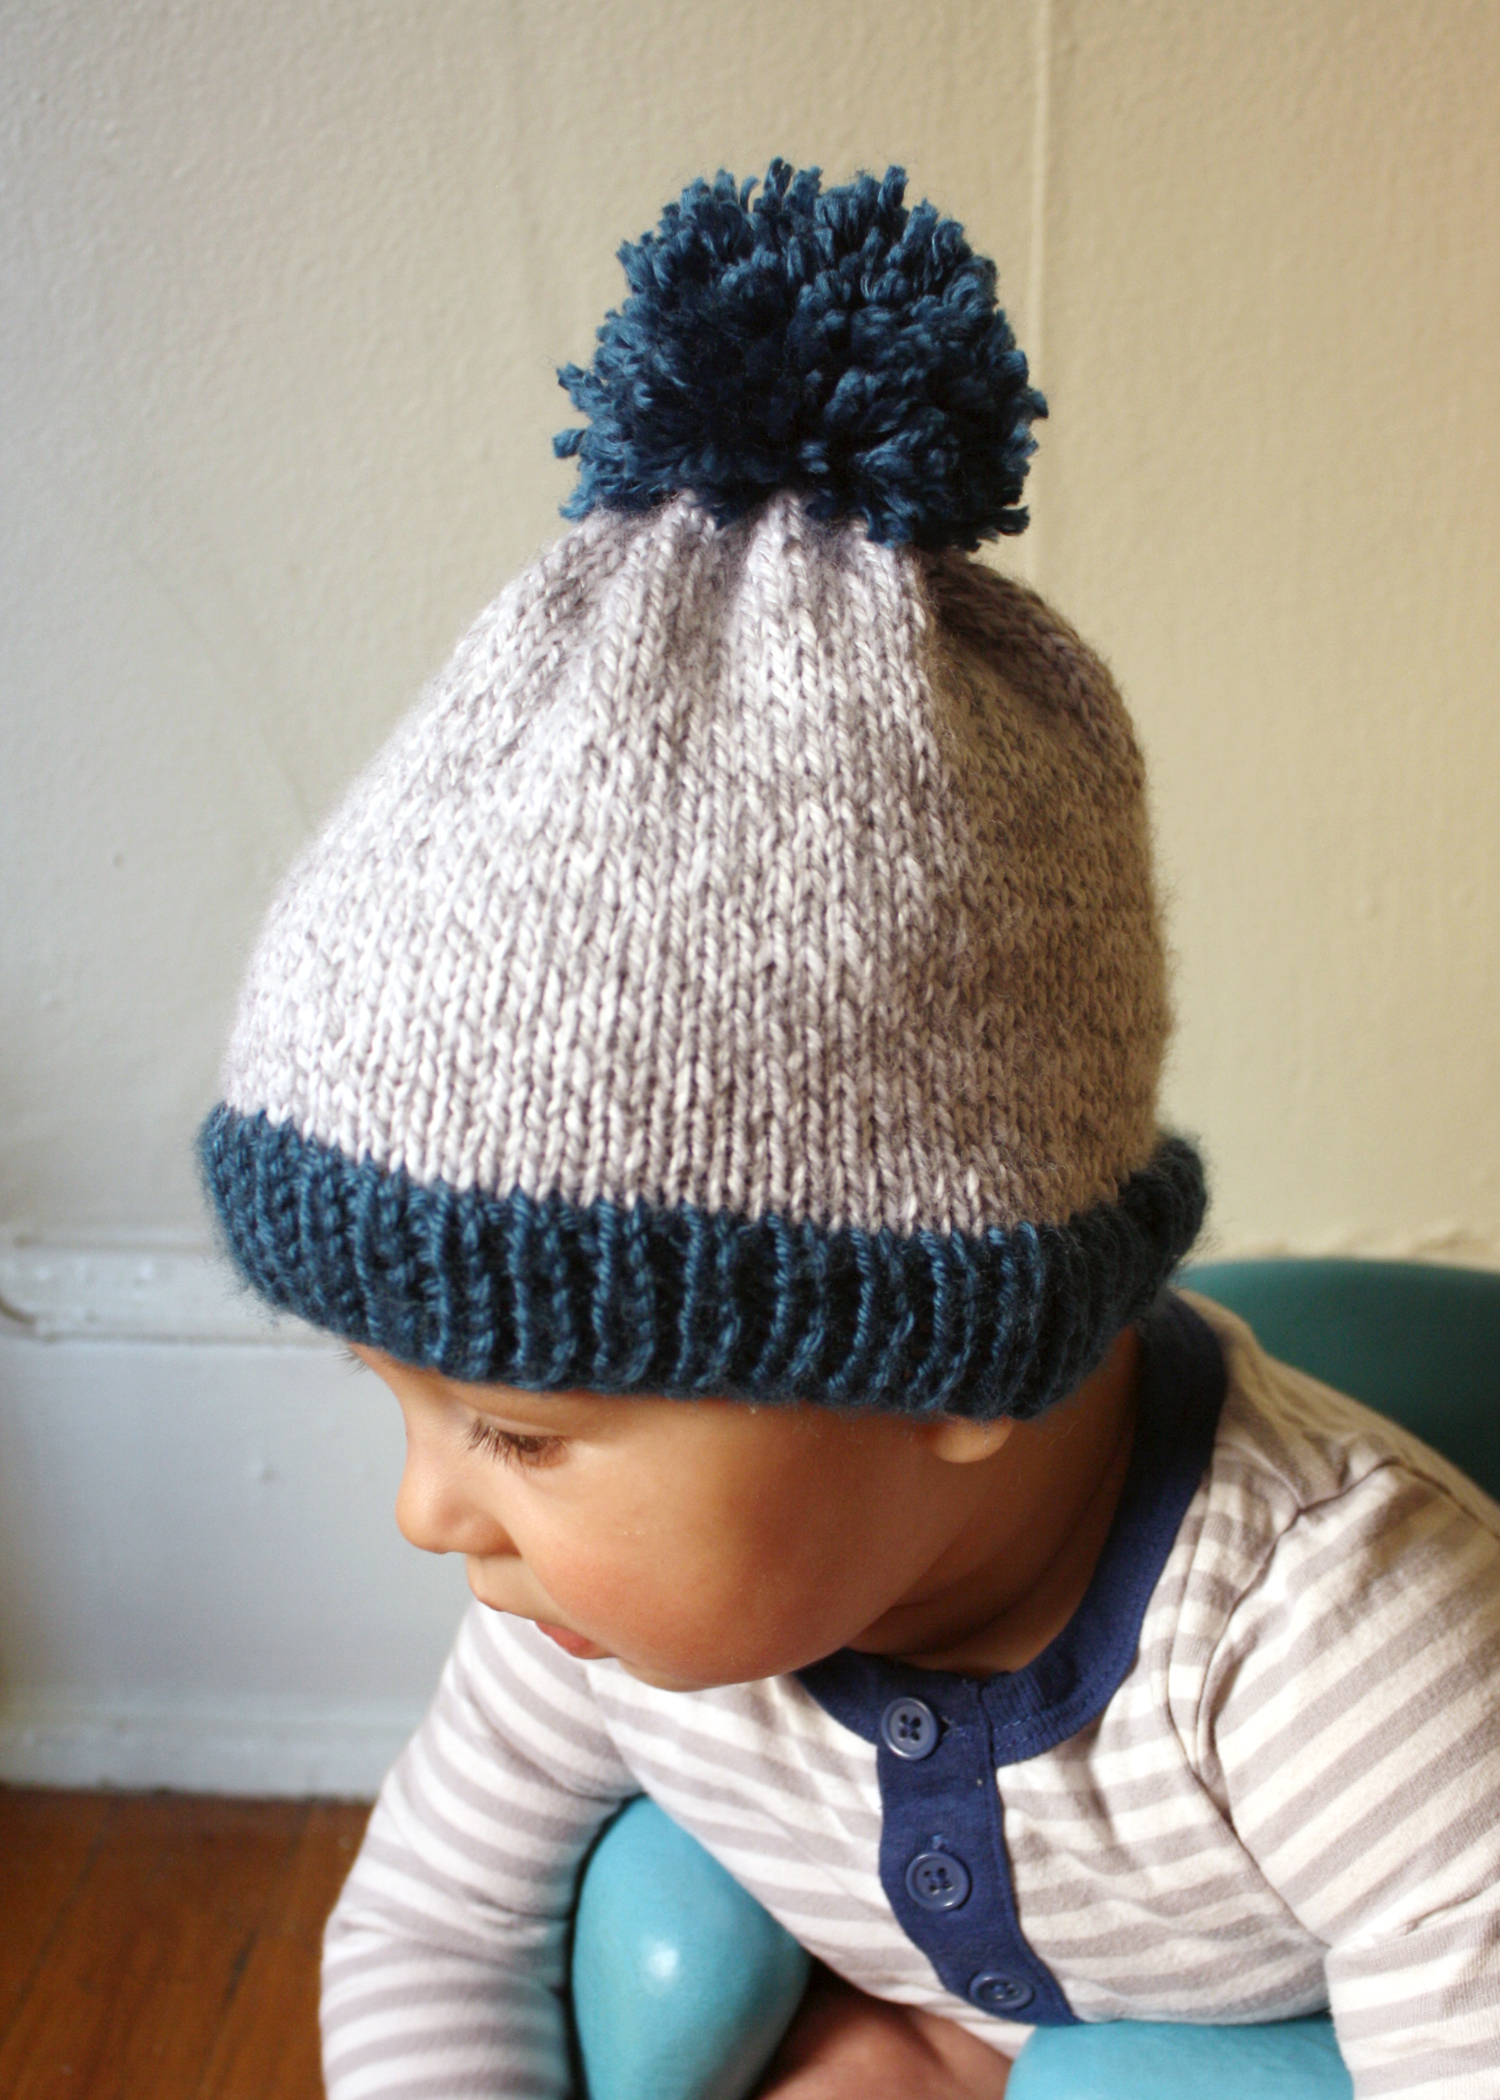 michael ann made.: Big Pom Baby Beanie - Now With Free PDF Pattern!